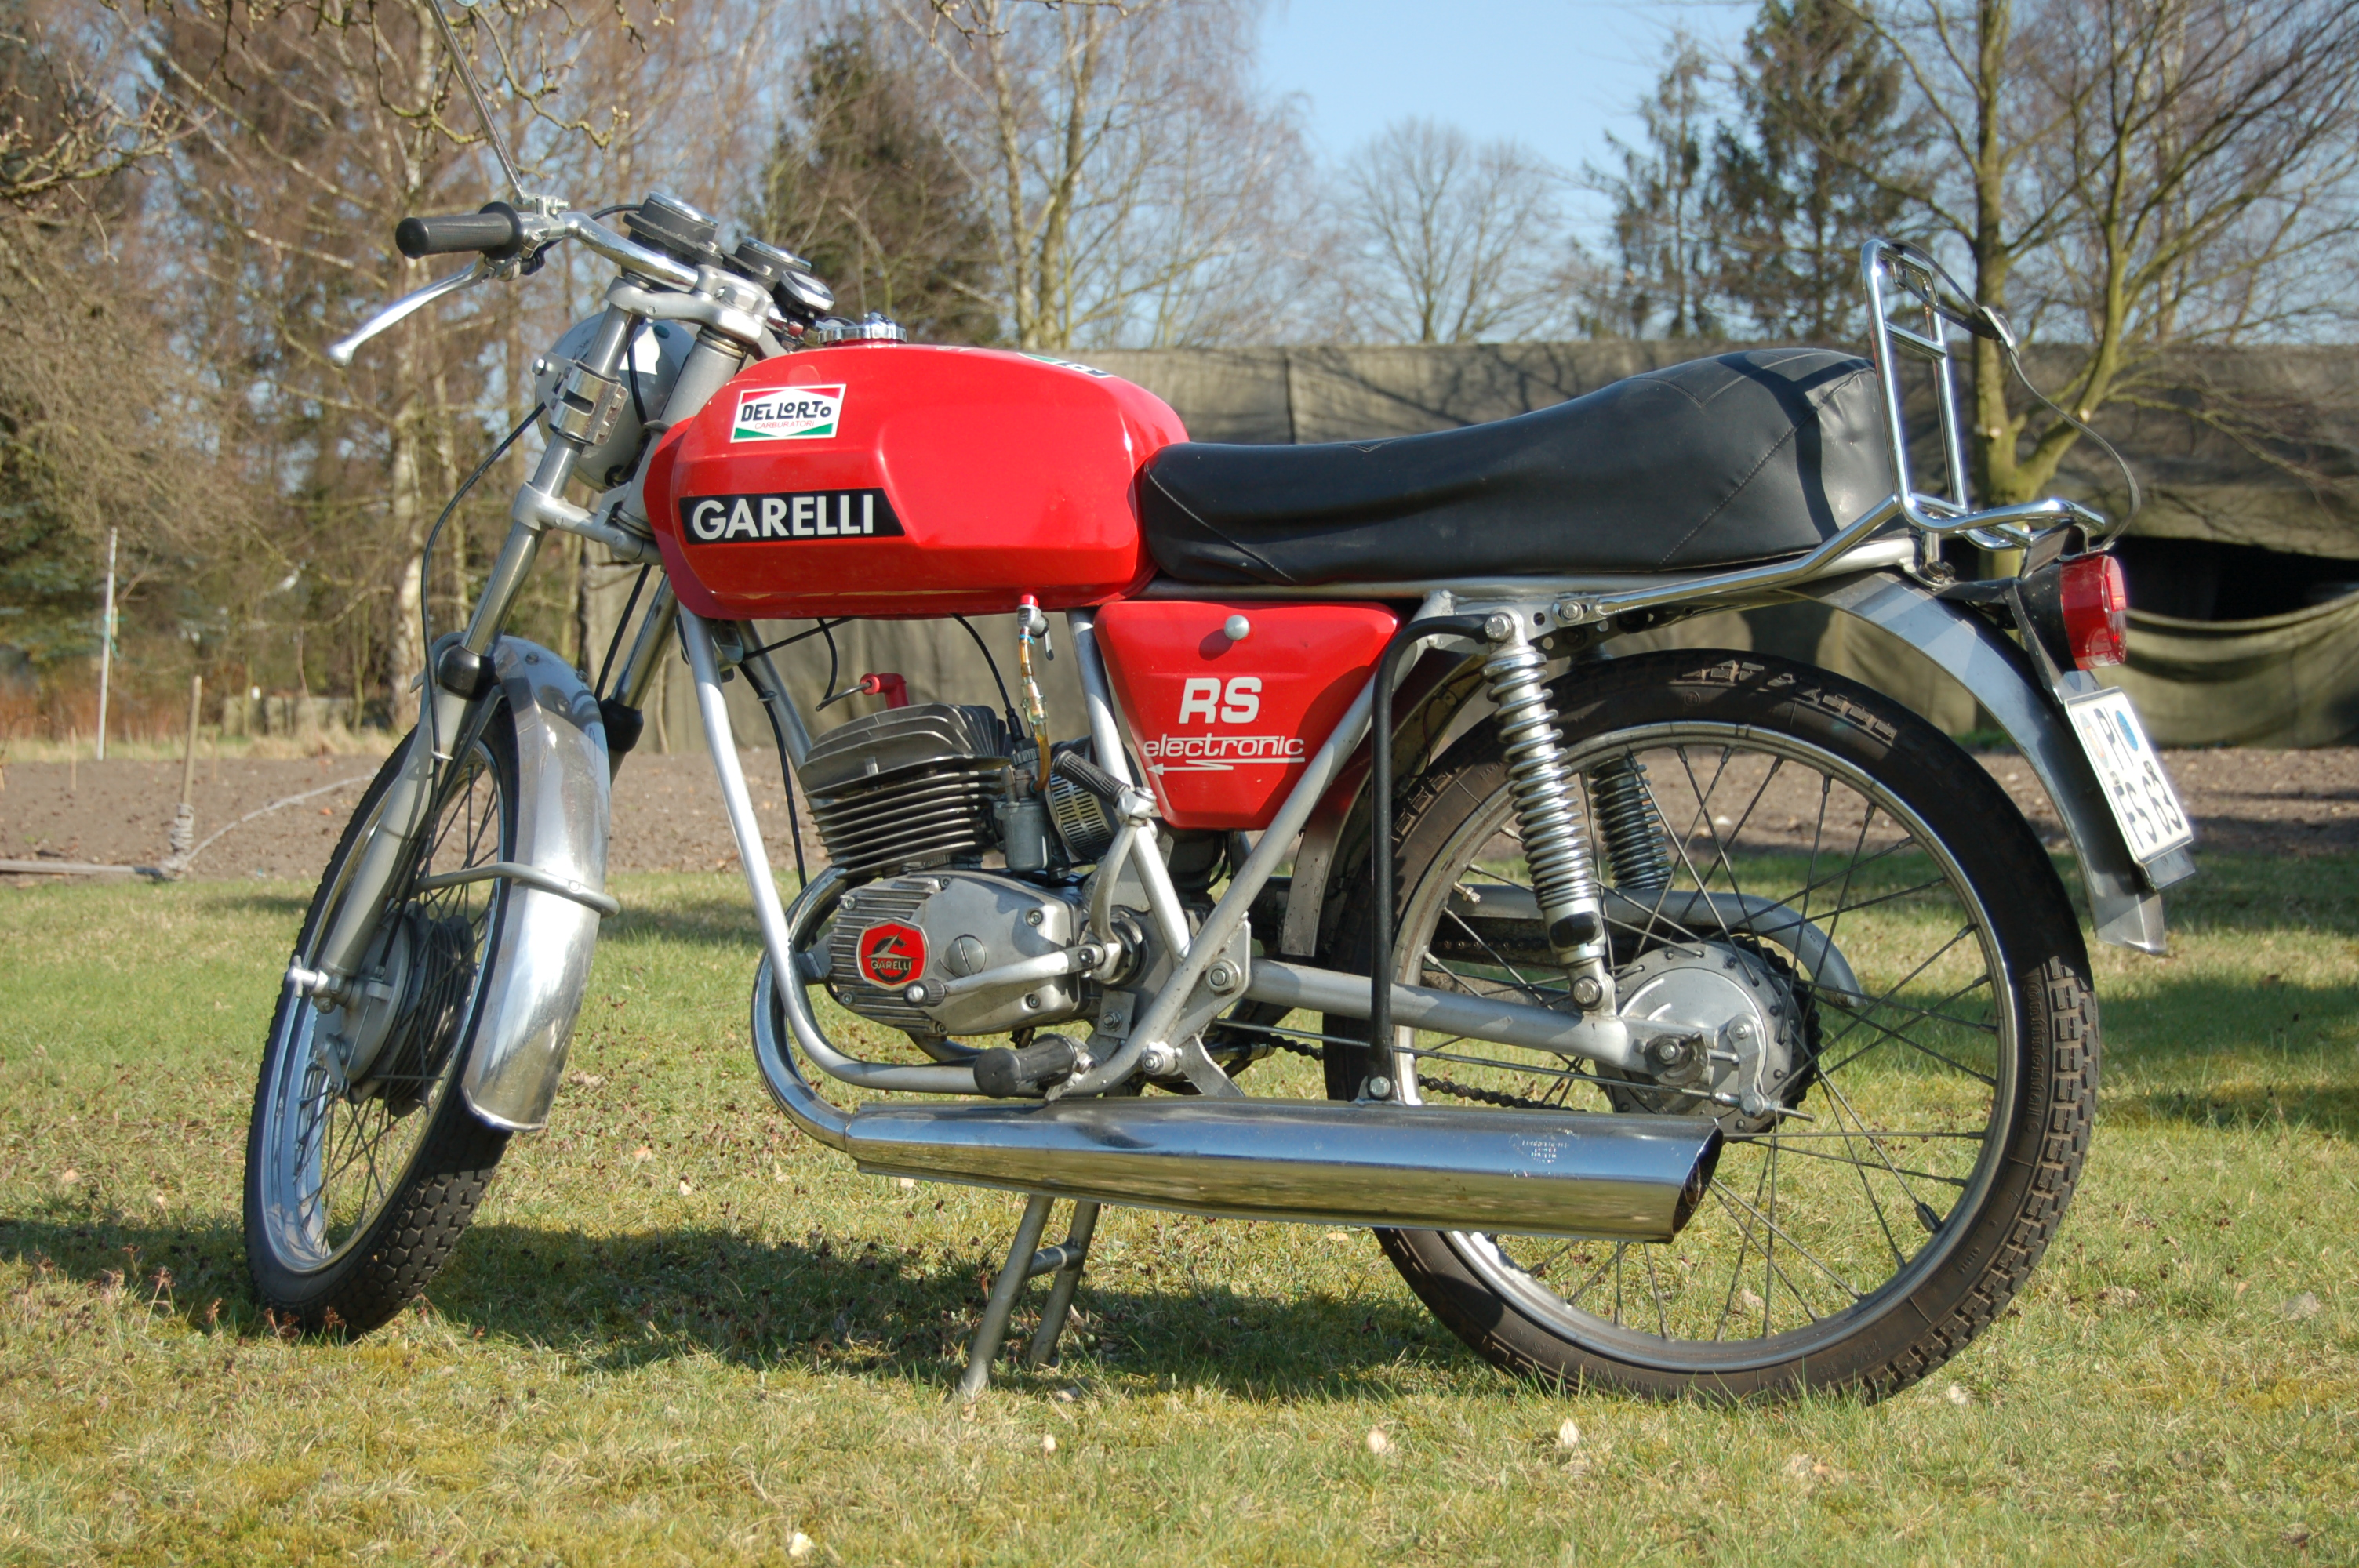 Garelli XR 125 Tiger images #153988